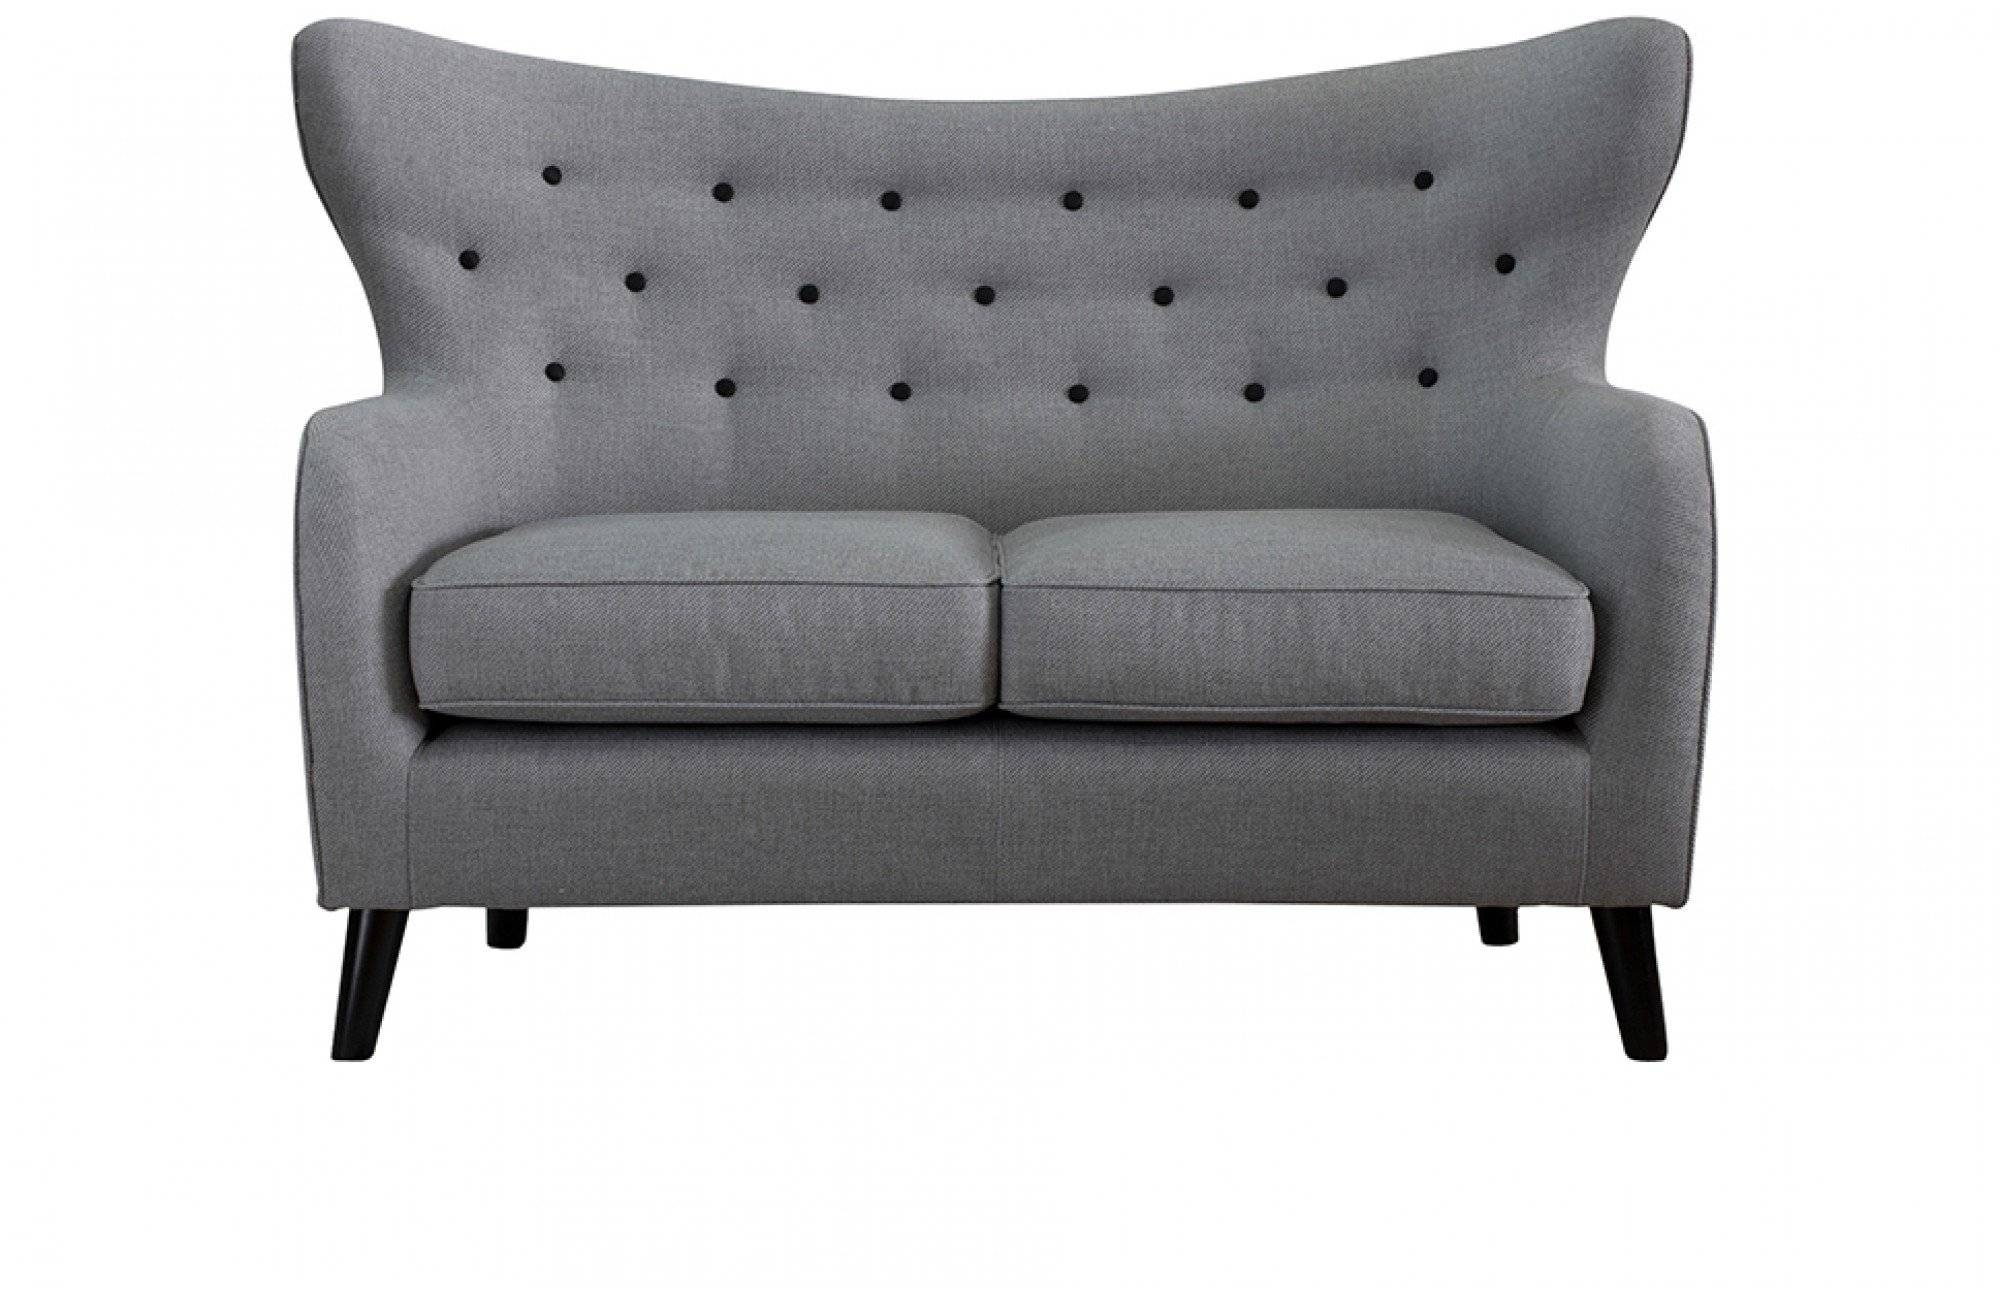 Wilfred Two Seater Sofa In Stone Grey - Out And Out Original throughout Two Seater Chairs (Image 28 of 30)